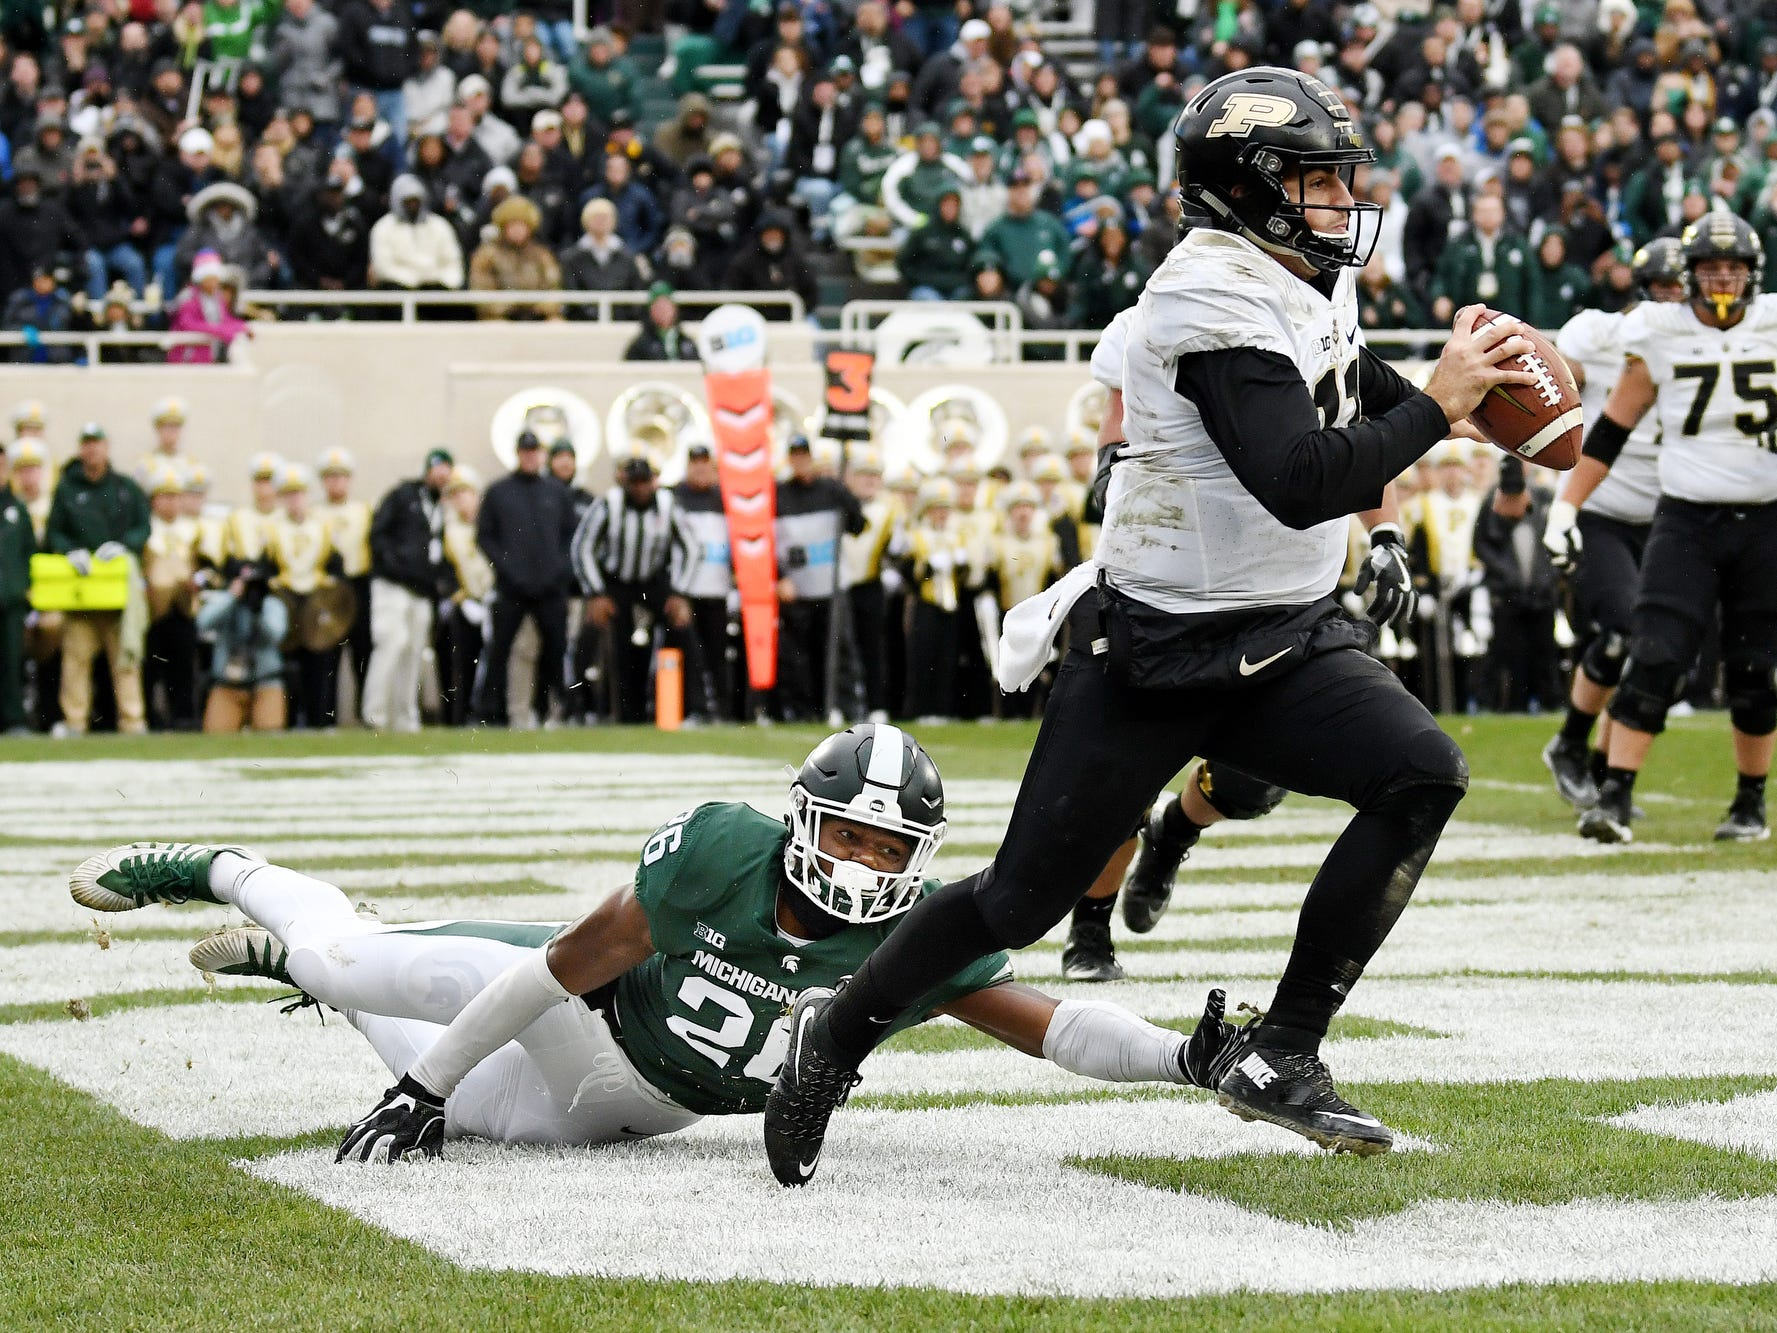 Michigan State's Brandon Bouyer-Randle, left, pressures Purdue quarterback David Blough as he scrambles in the end zone during the third quarter on Saturday, Oct. 27, 2018, at Spartan Stadium in East Lansing.